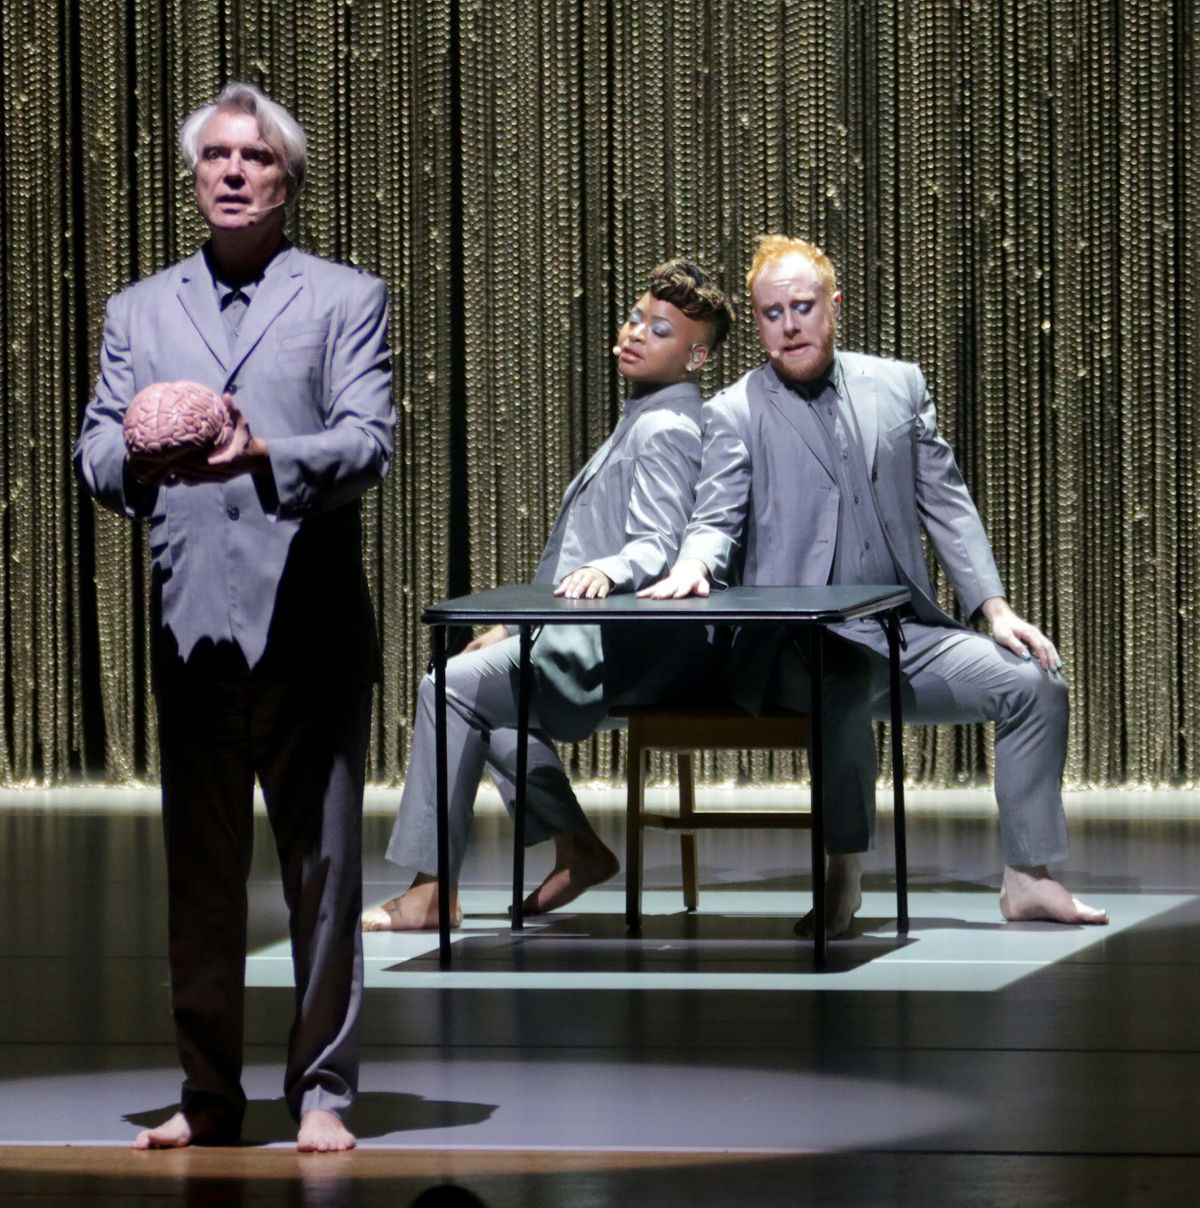 David Byrne. Pictures by: Andy Shaw